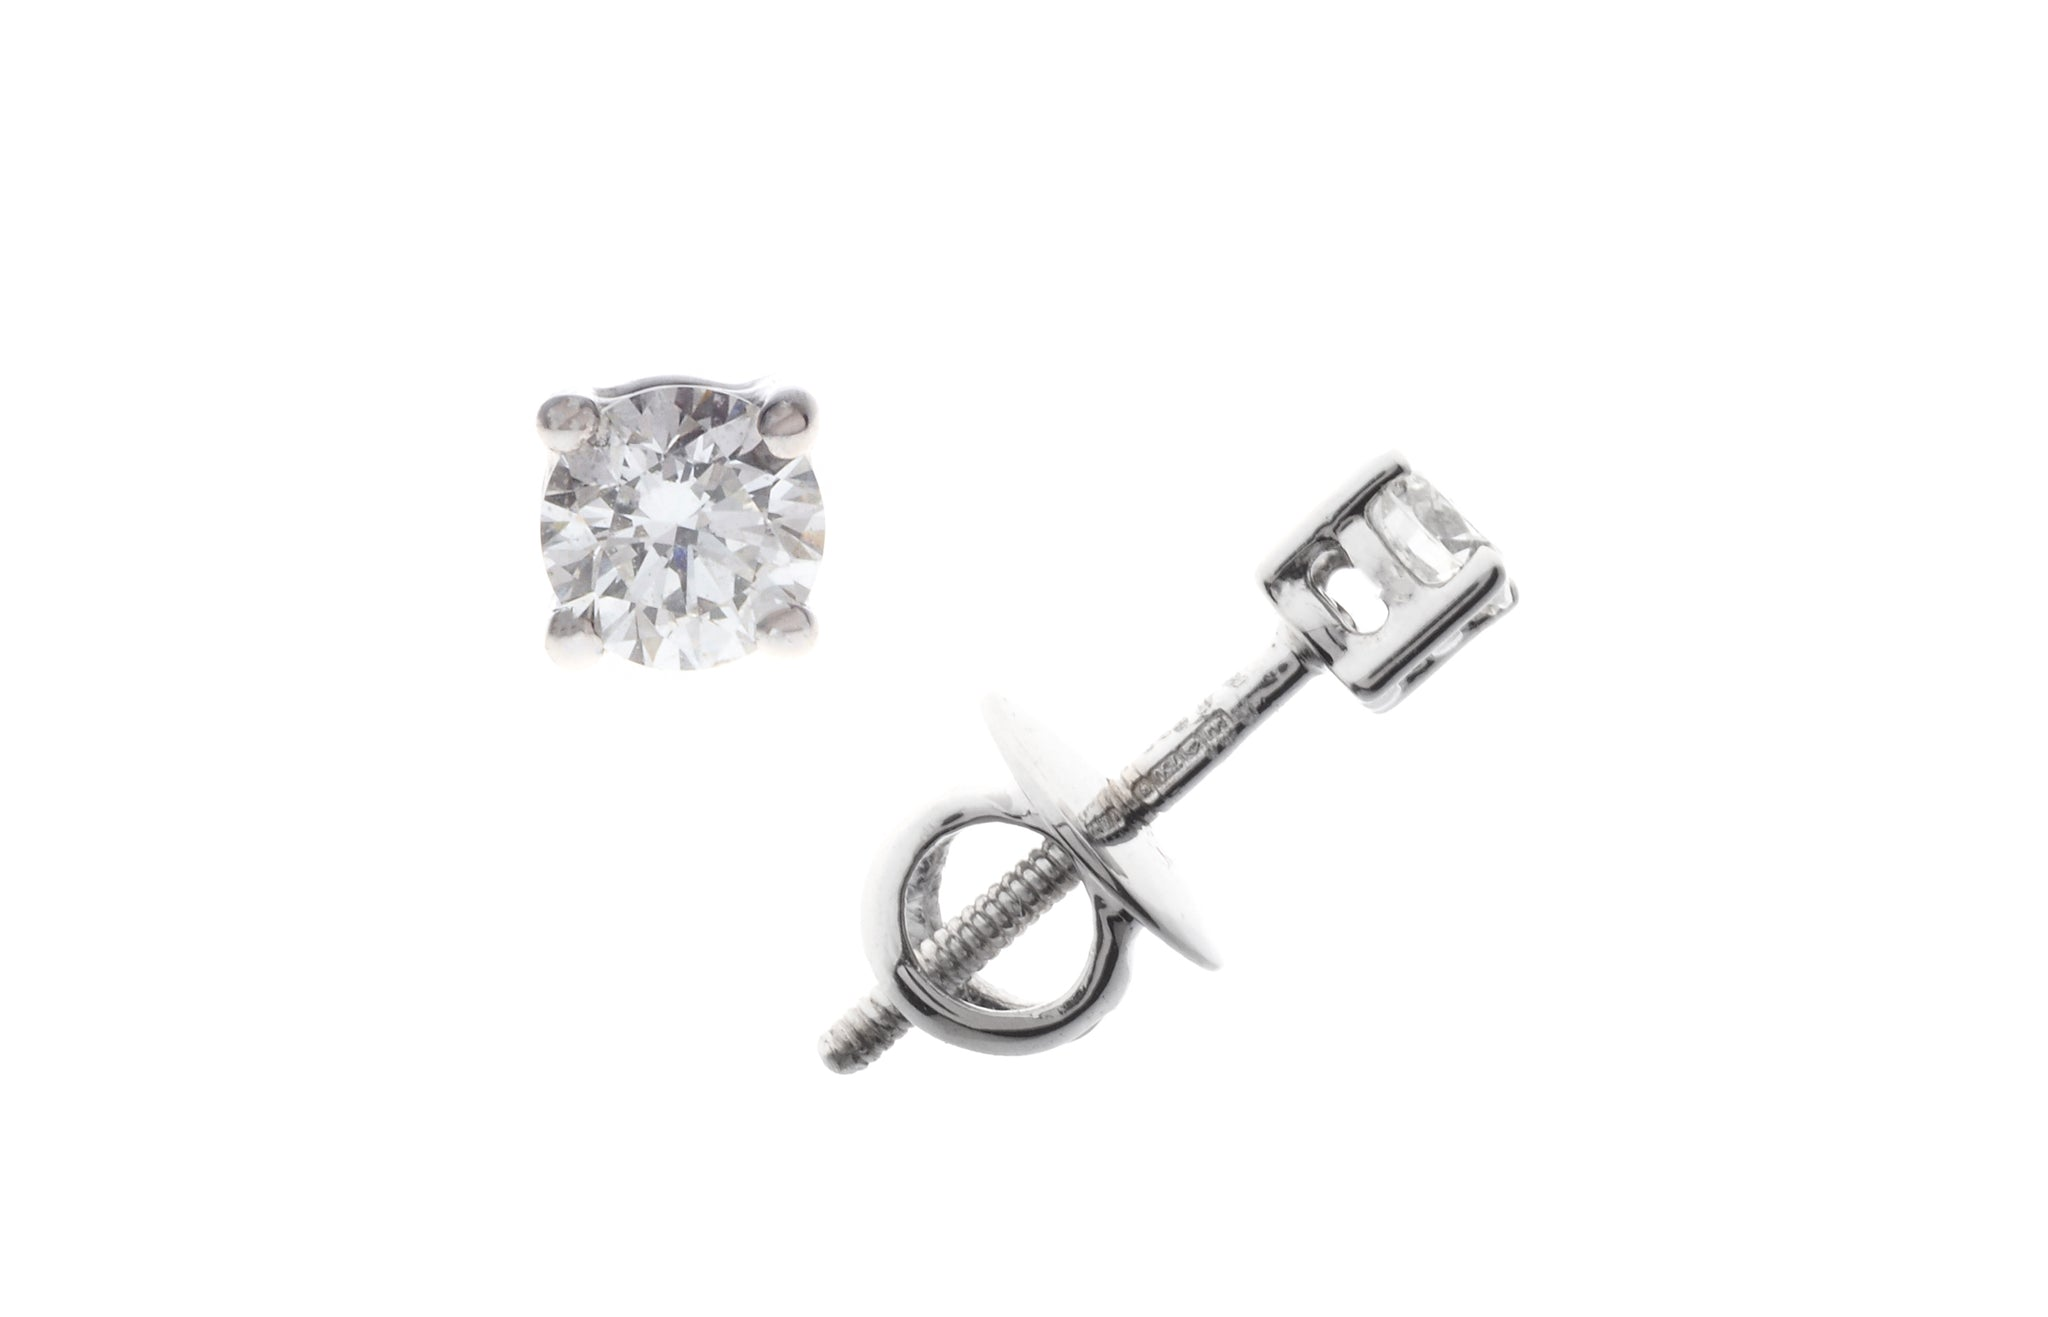 18ct White Gold 0.24ct Diamond Stud Earrings (MCS2267)